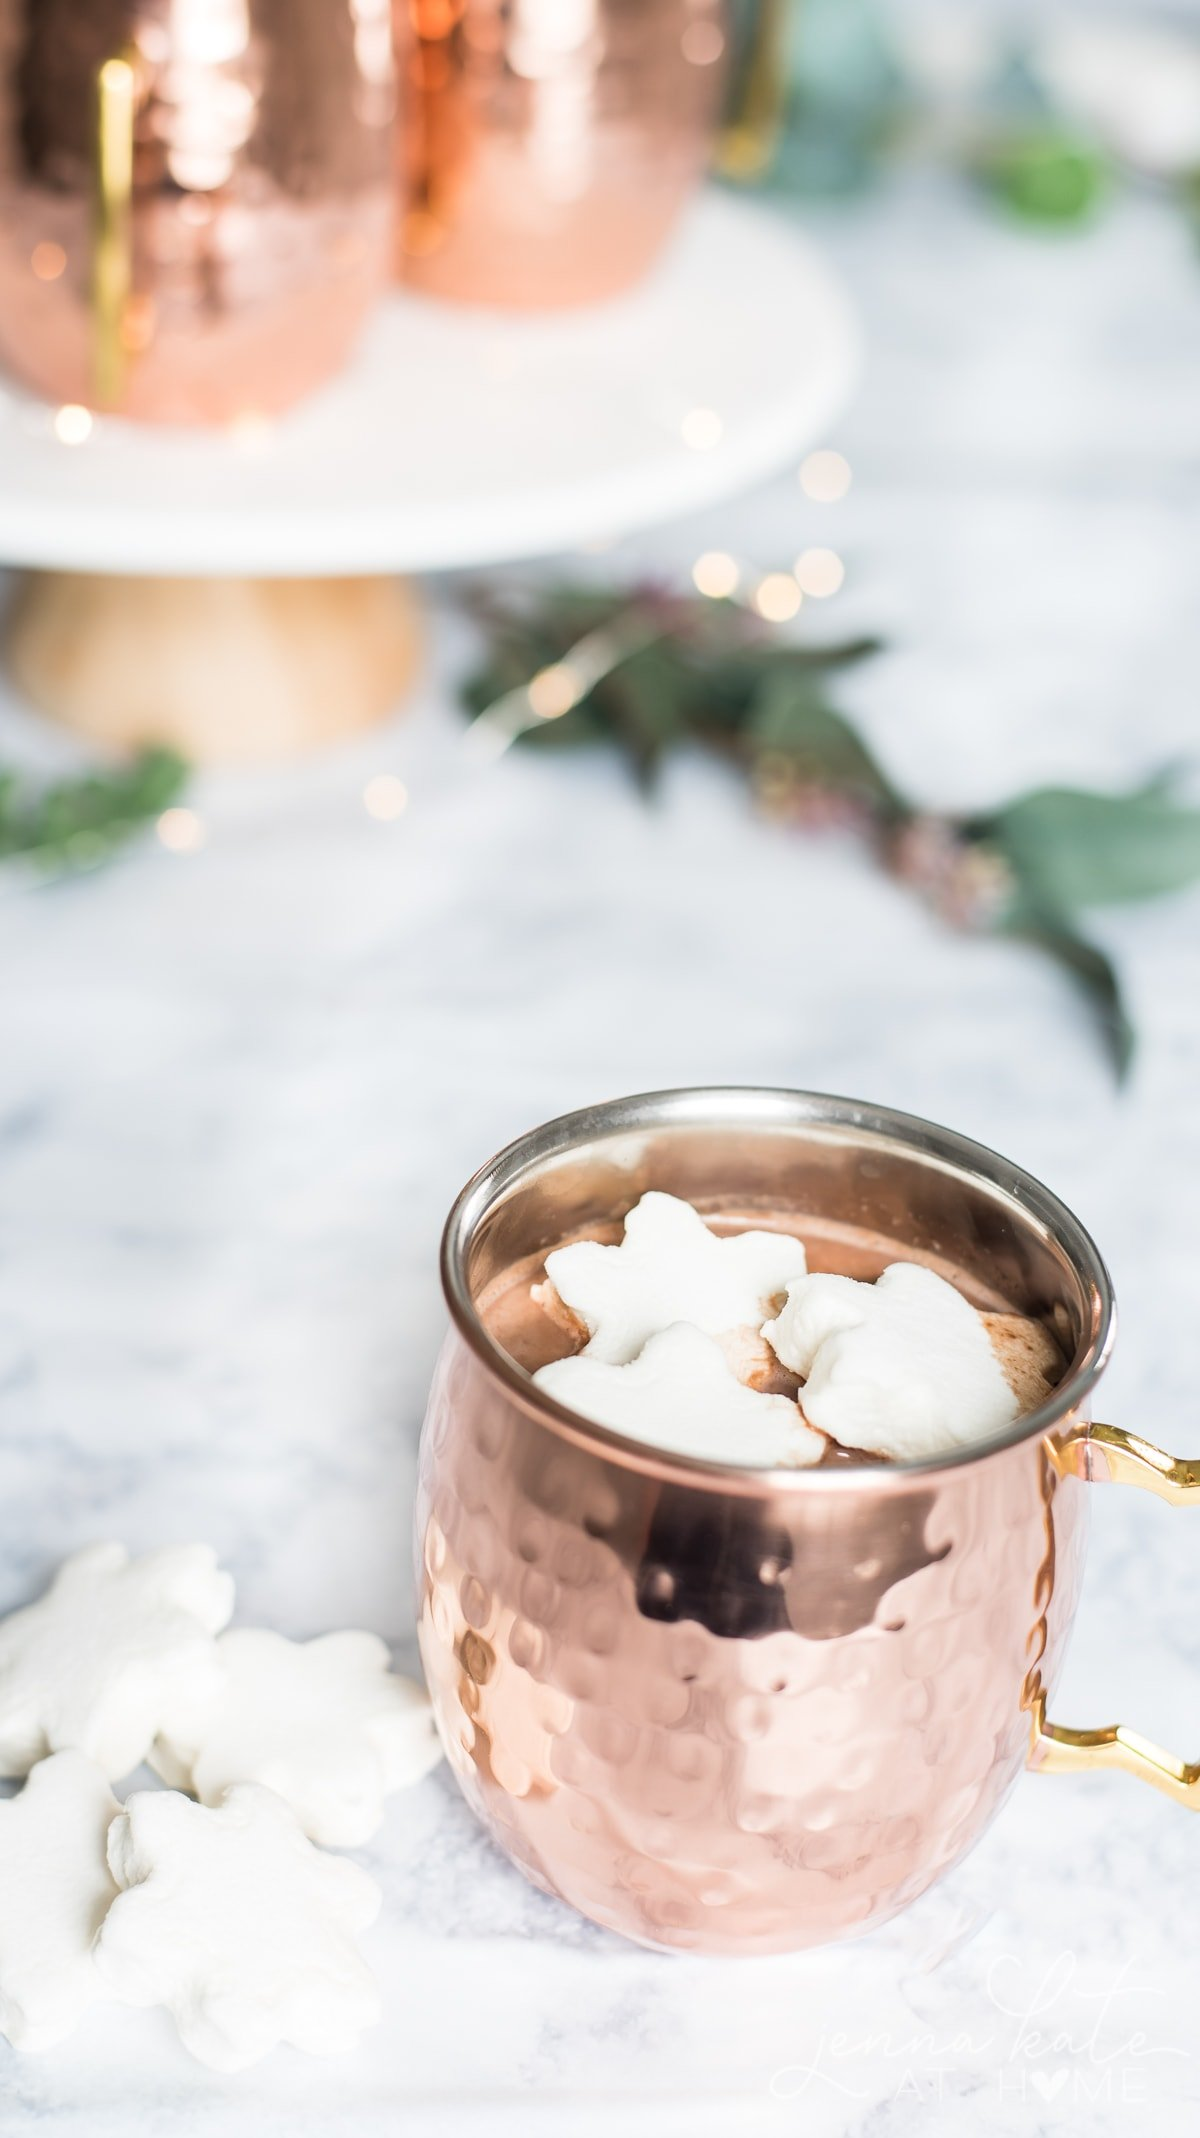 Made from scratch easy hot chocolate recipe without cocoa powder